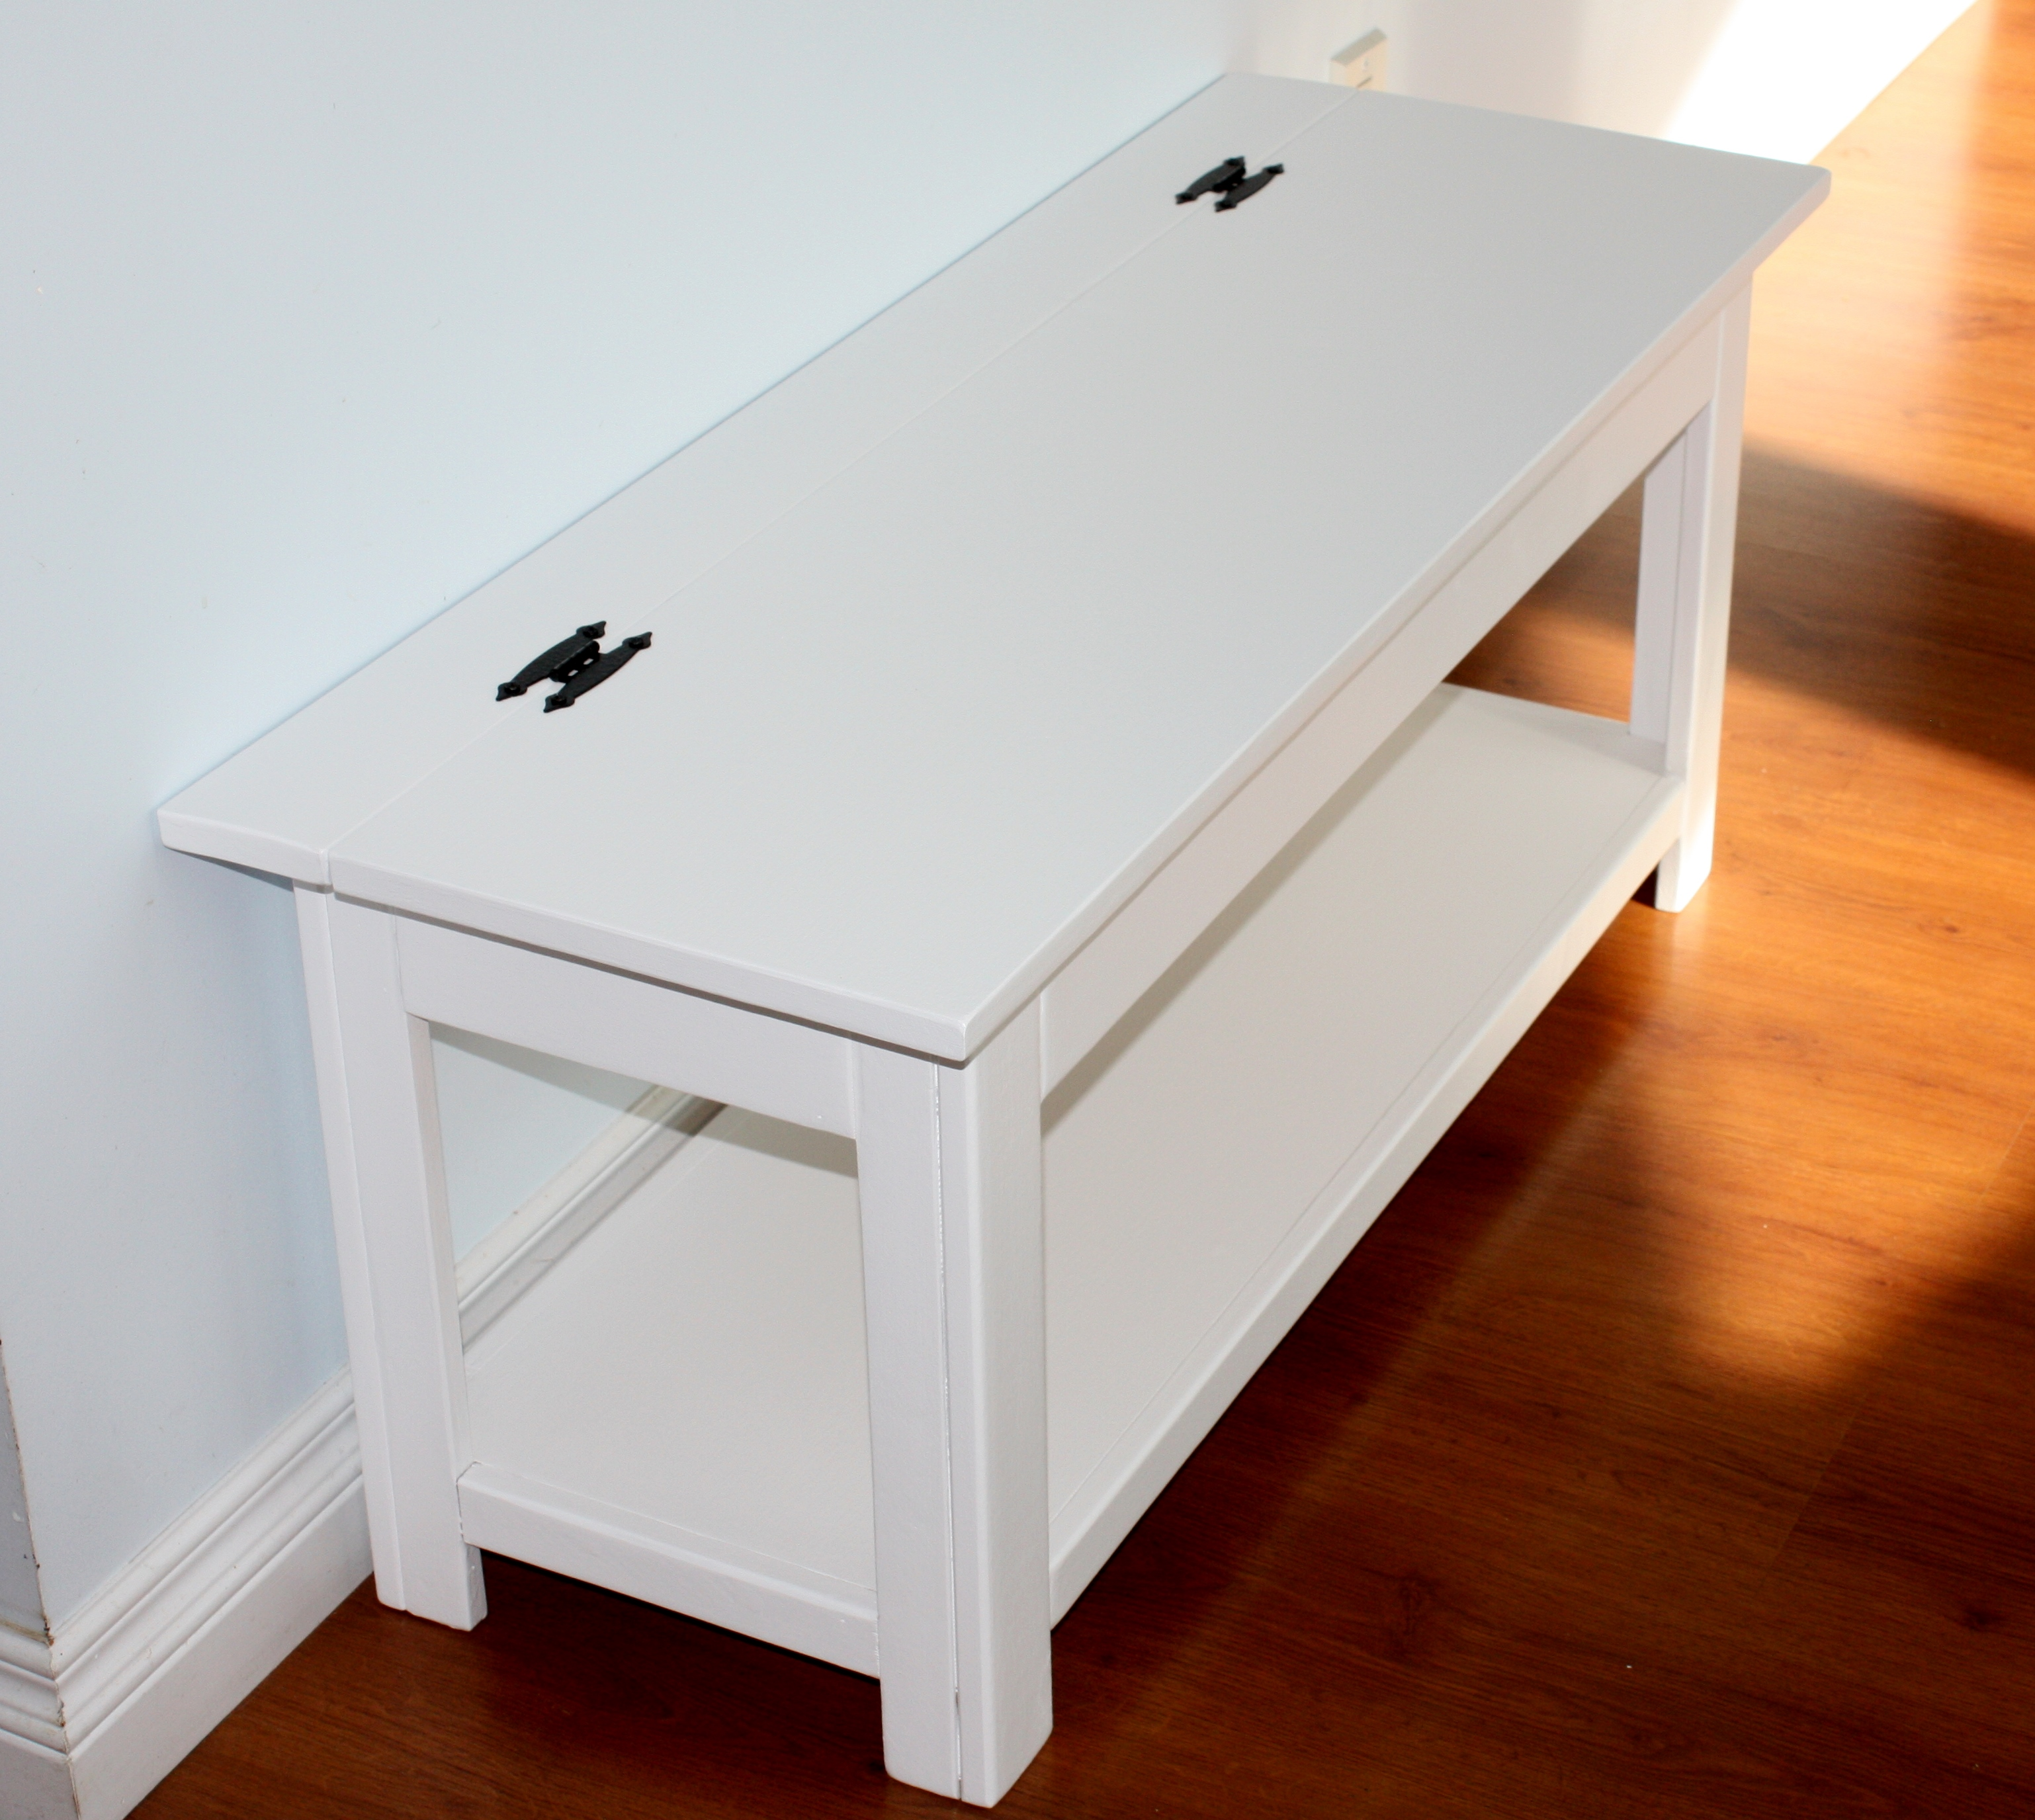 Ana White Flip Top Storage Bench Diy Projects